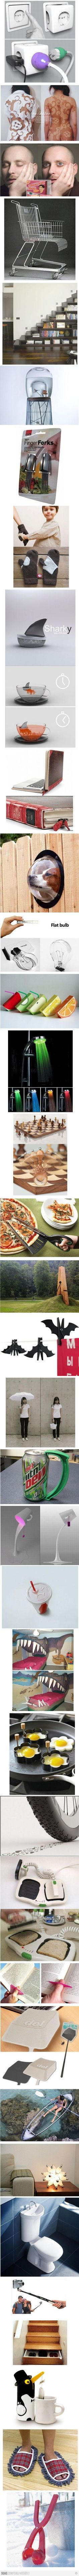 awesome inventions!